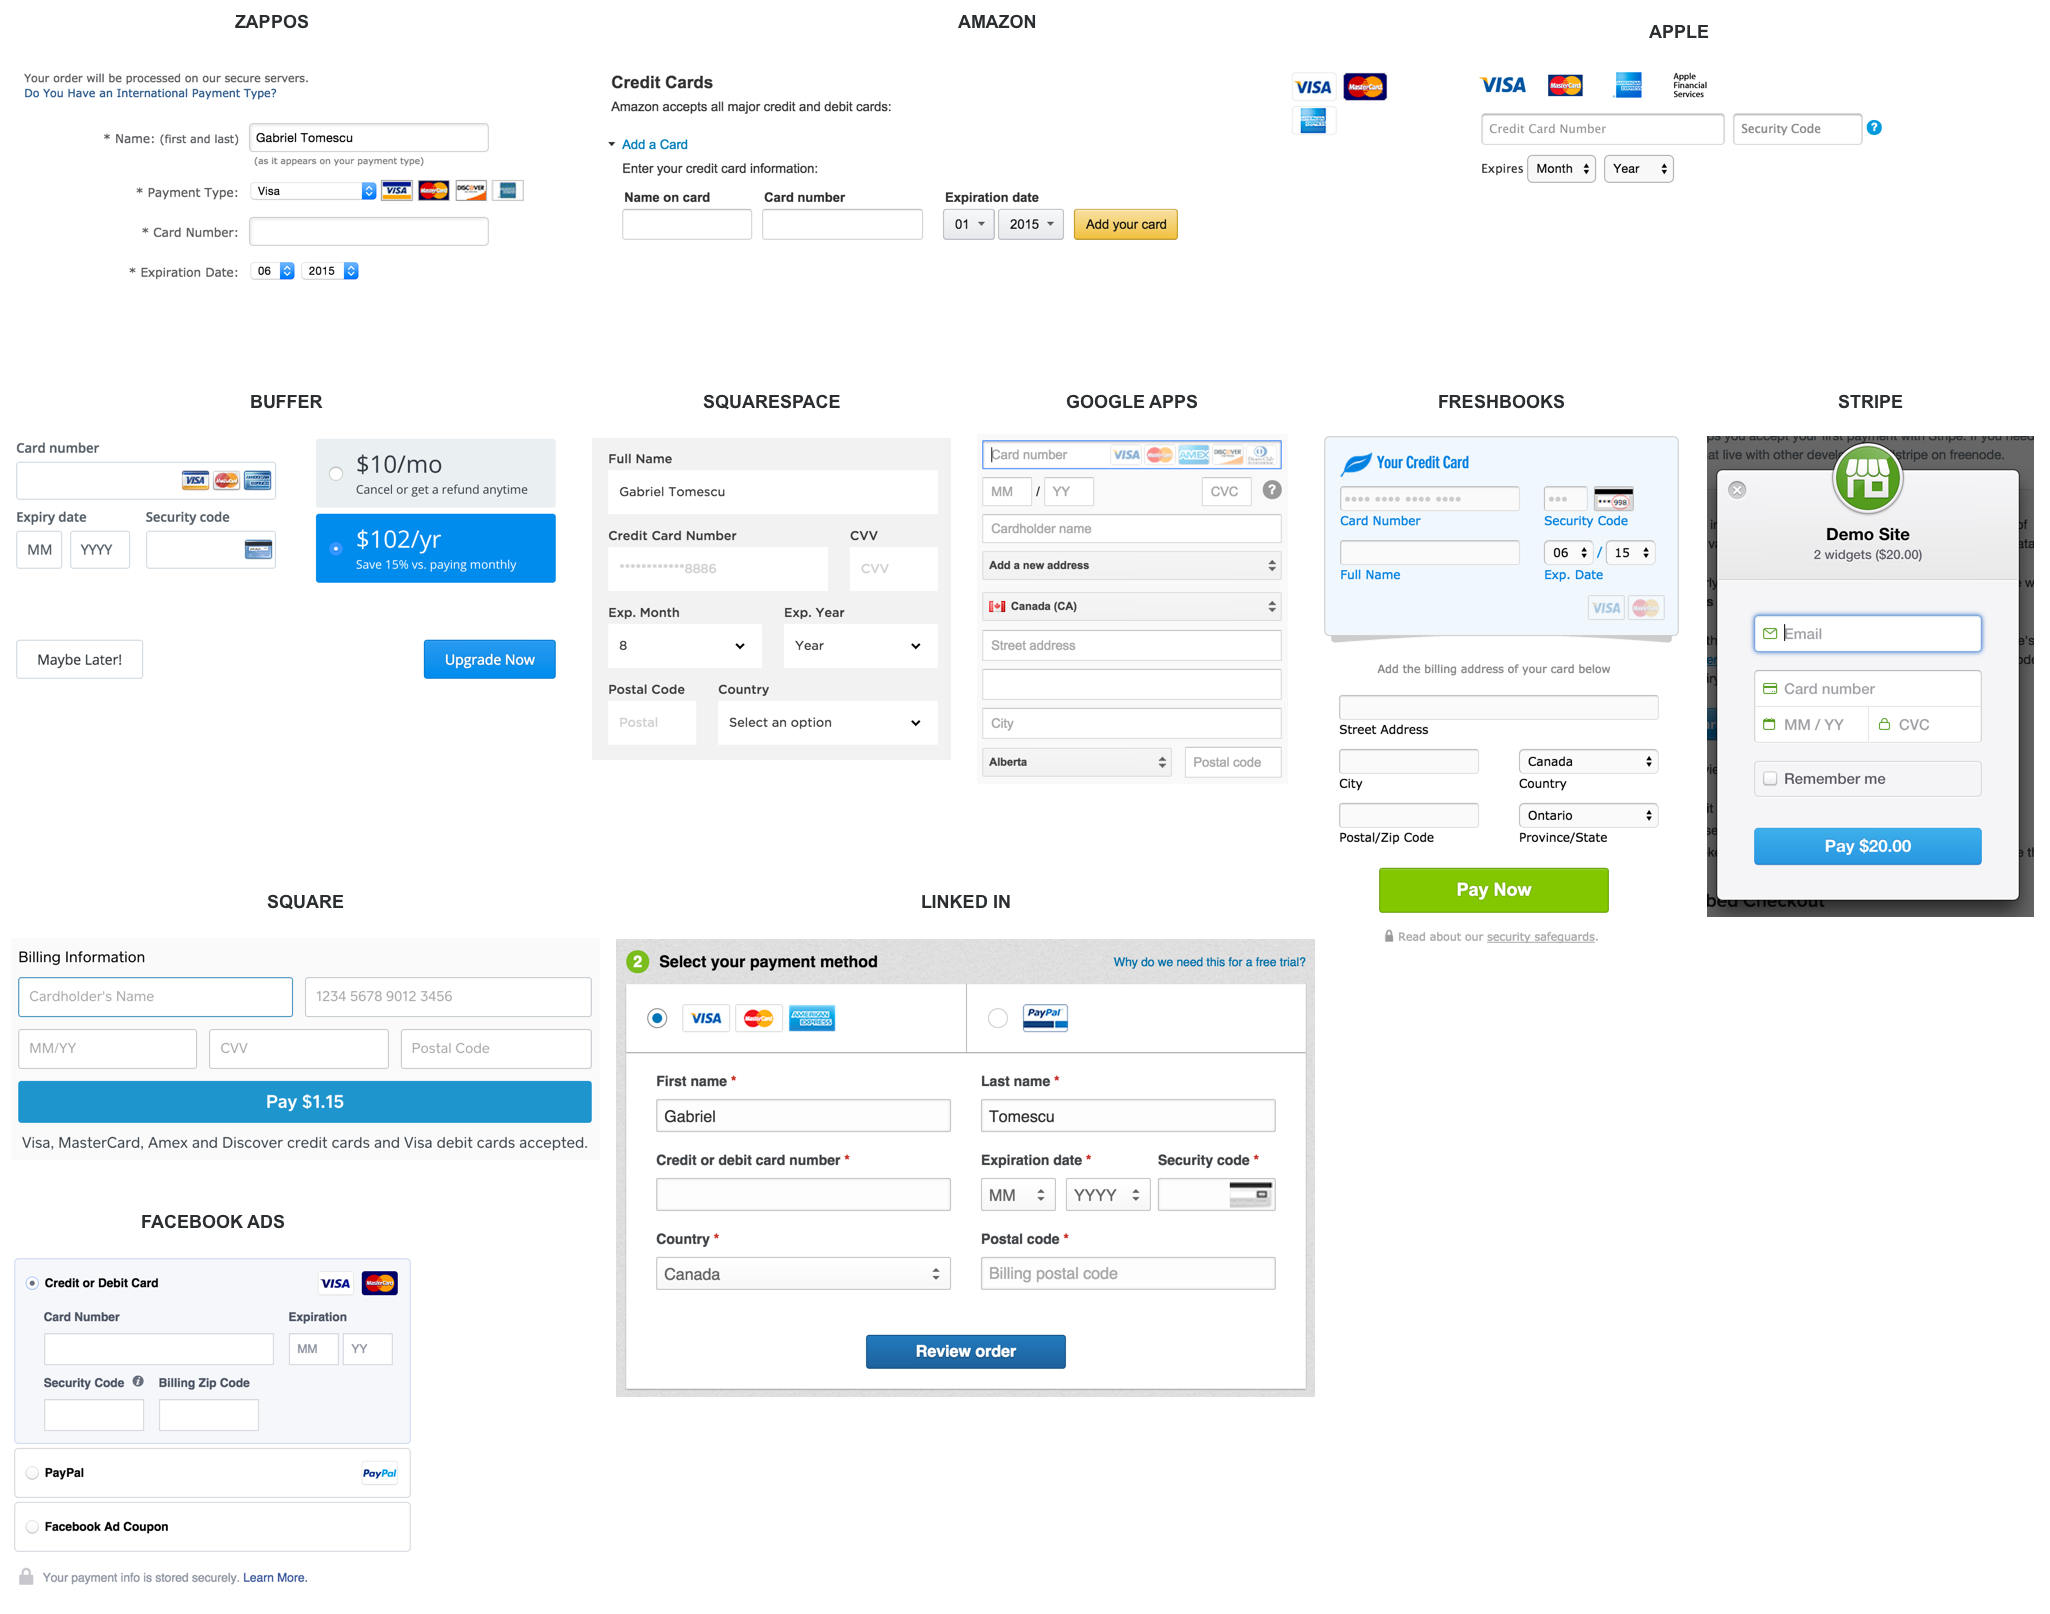 Credit card forms from various popular websites and apps.